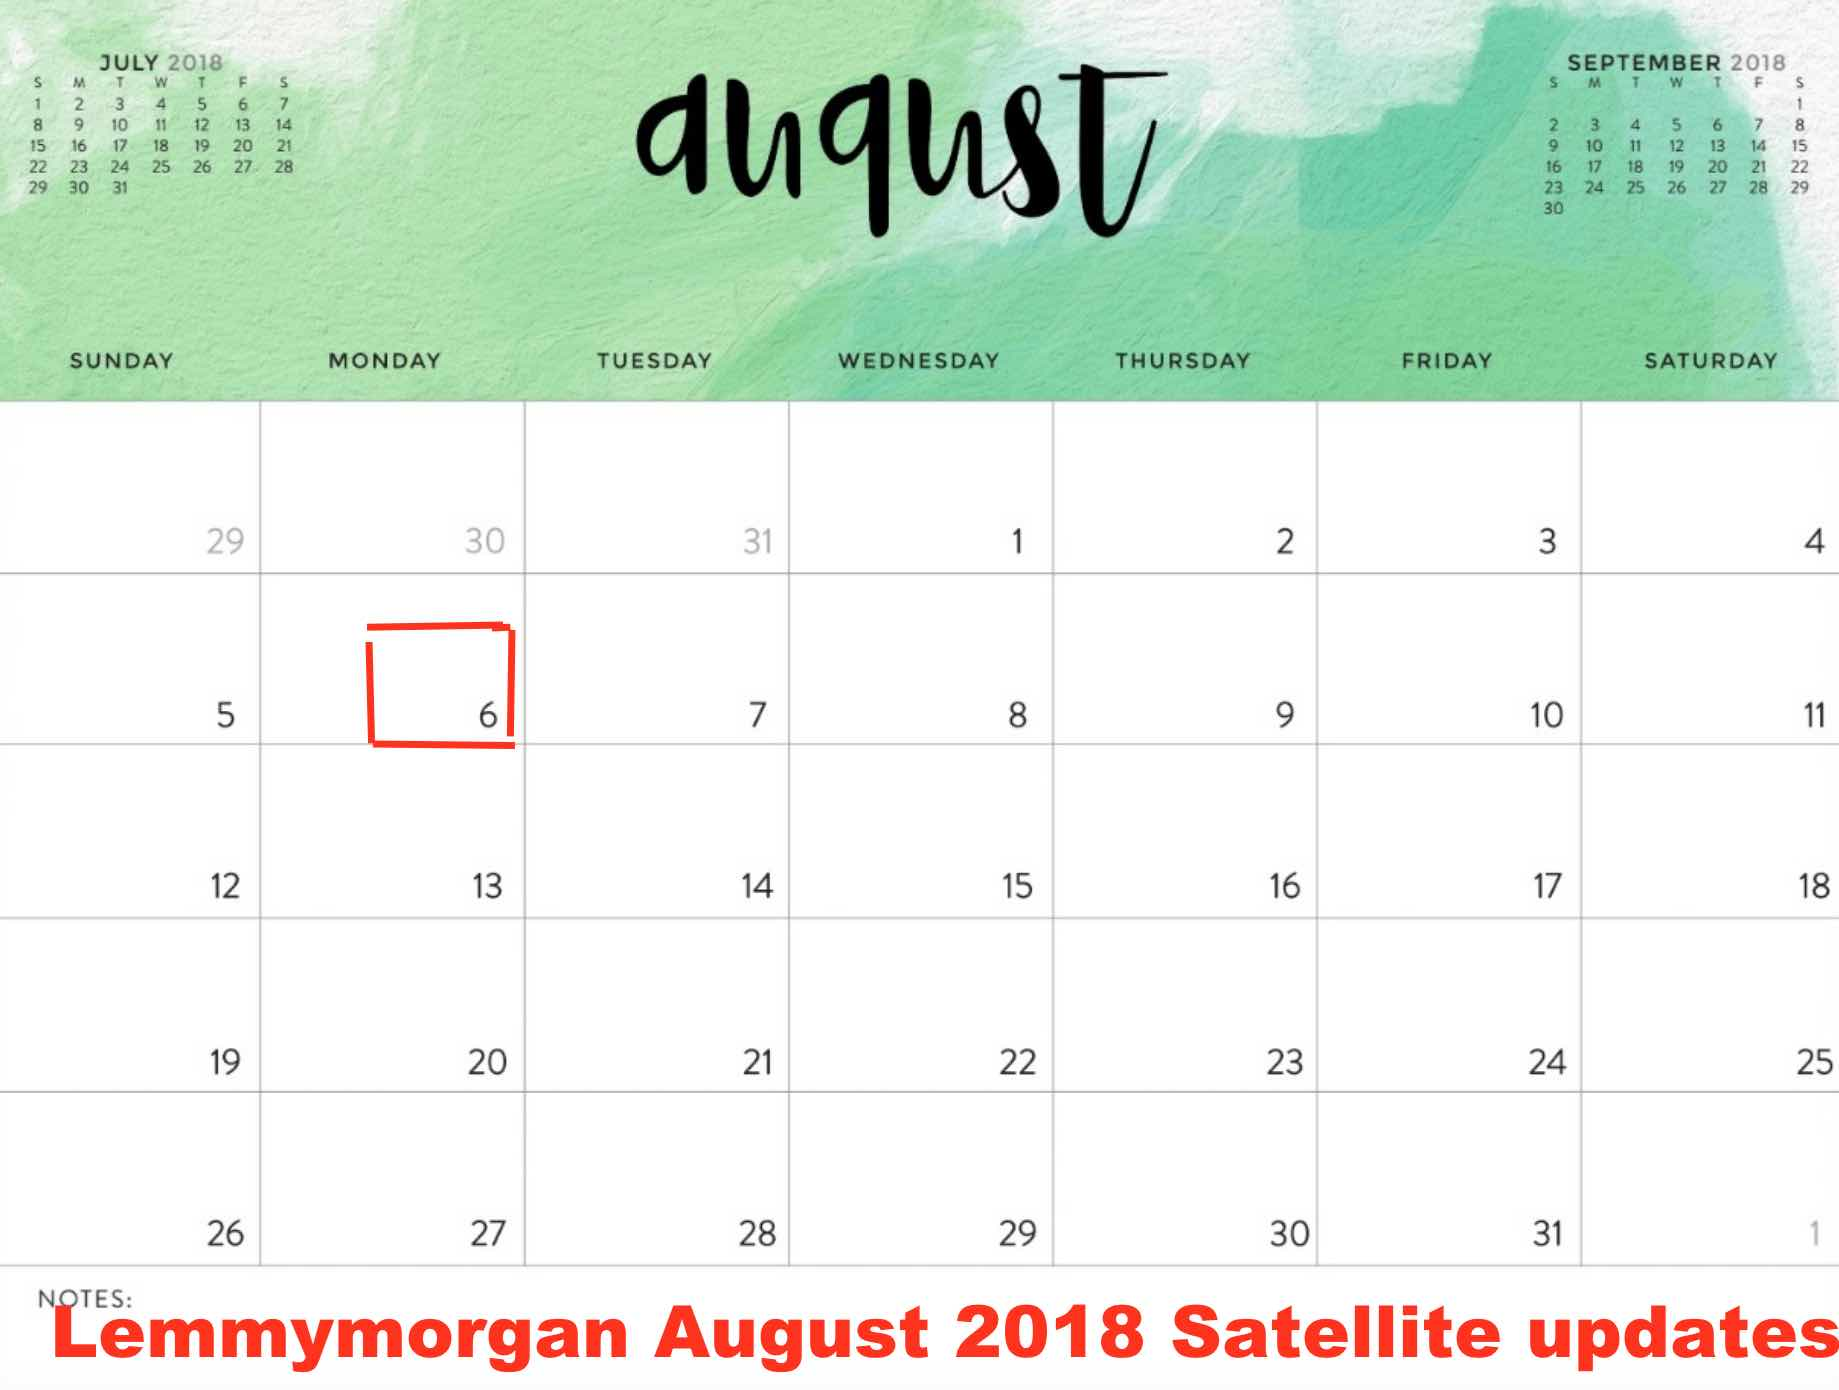 Lemmy morgan update August 2018 all about what you need to